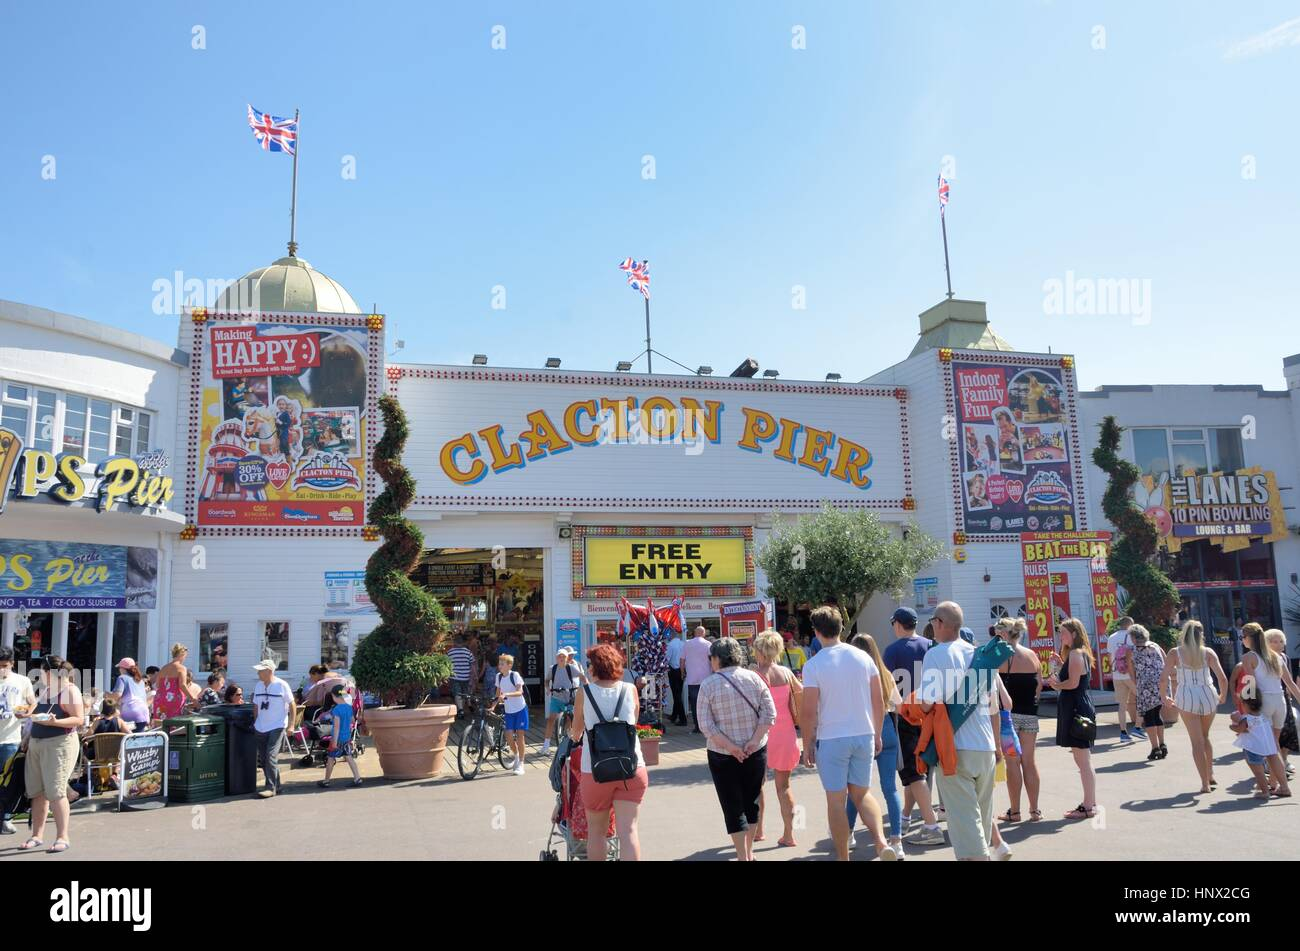 Clacton on Sea , United Kingdom - August 26, 2016: Crowds outside Clacton Pier - Stock Image